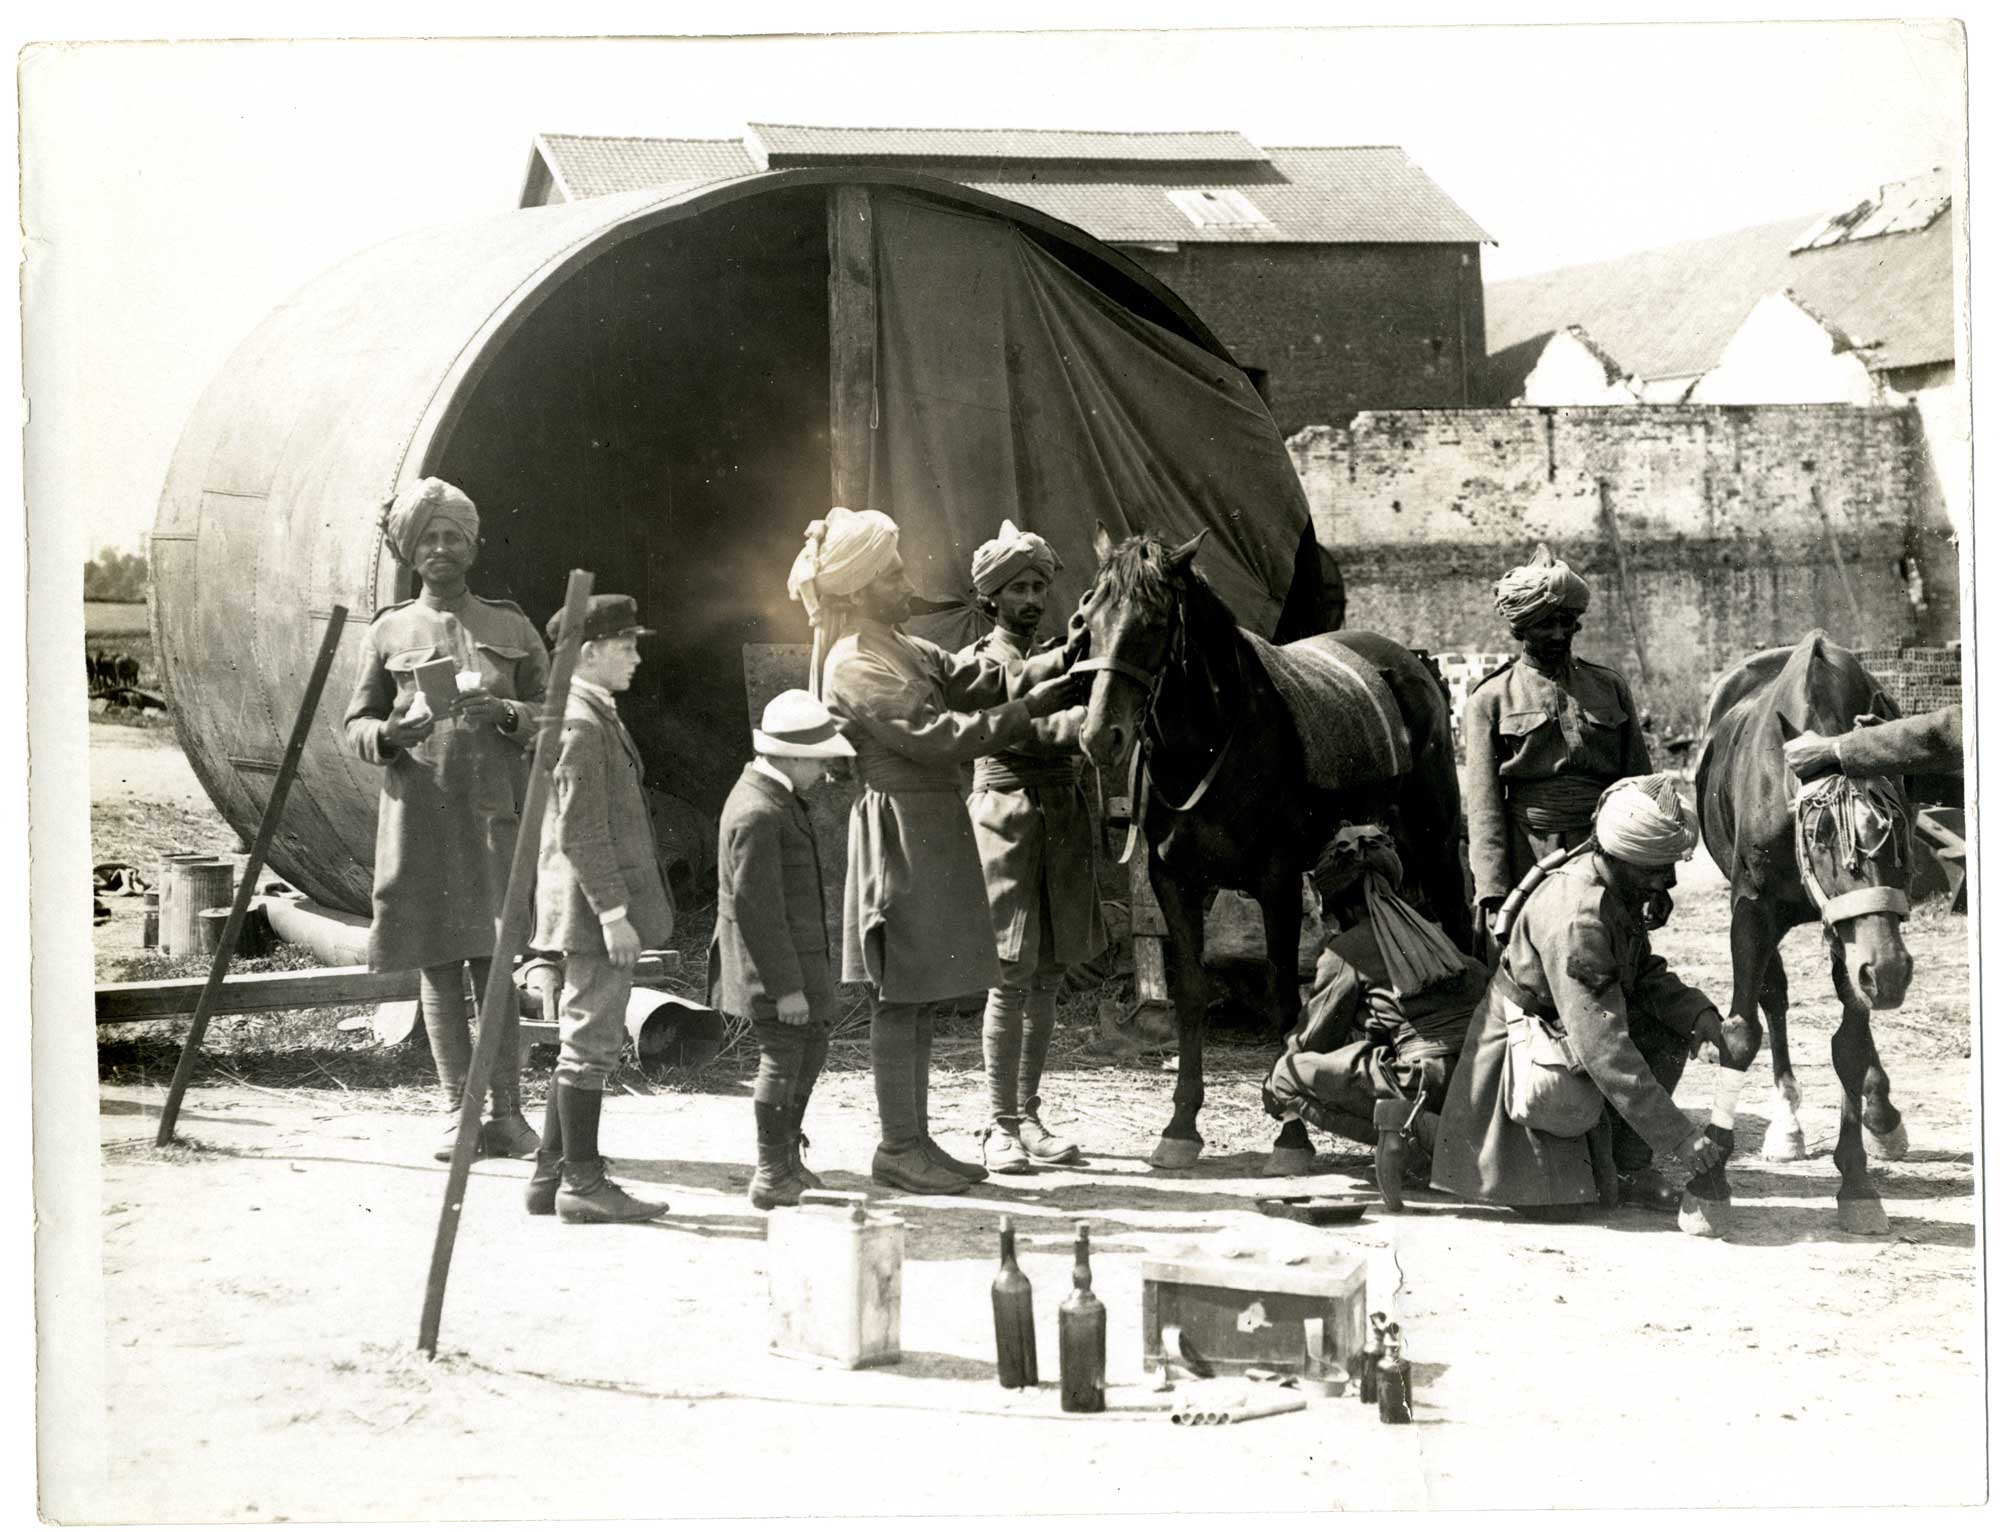 An Indian cavalry horse hospital in a French factory [Estrée Blanche], 1915. One of hundreds of photographs recording the contribution of Indian soldiers to the Allied war effort.